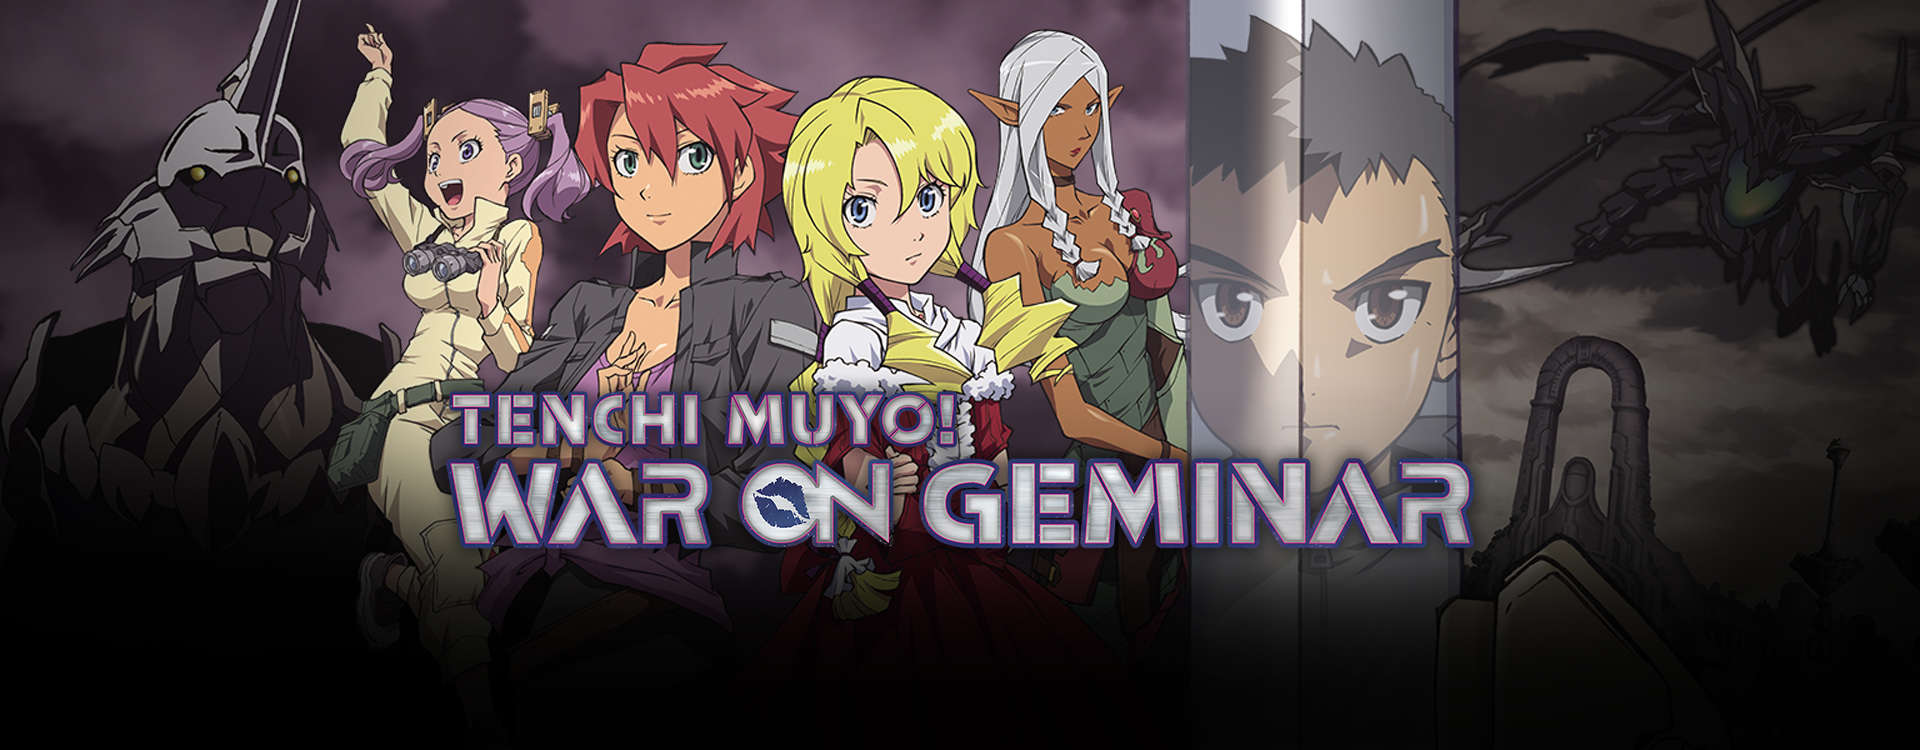 Tenchi Muyo! War on Geminar